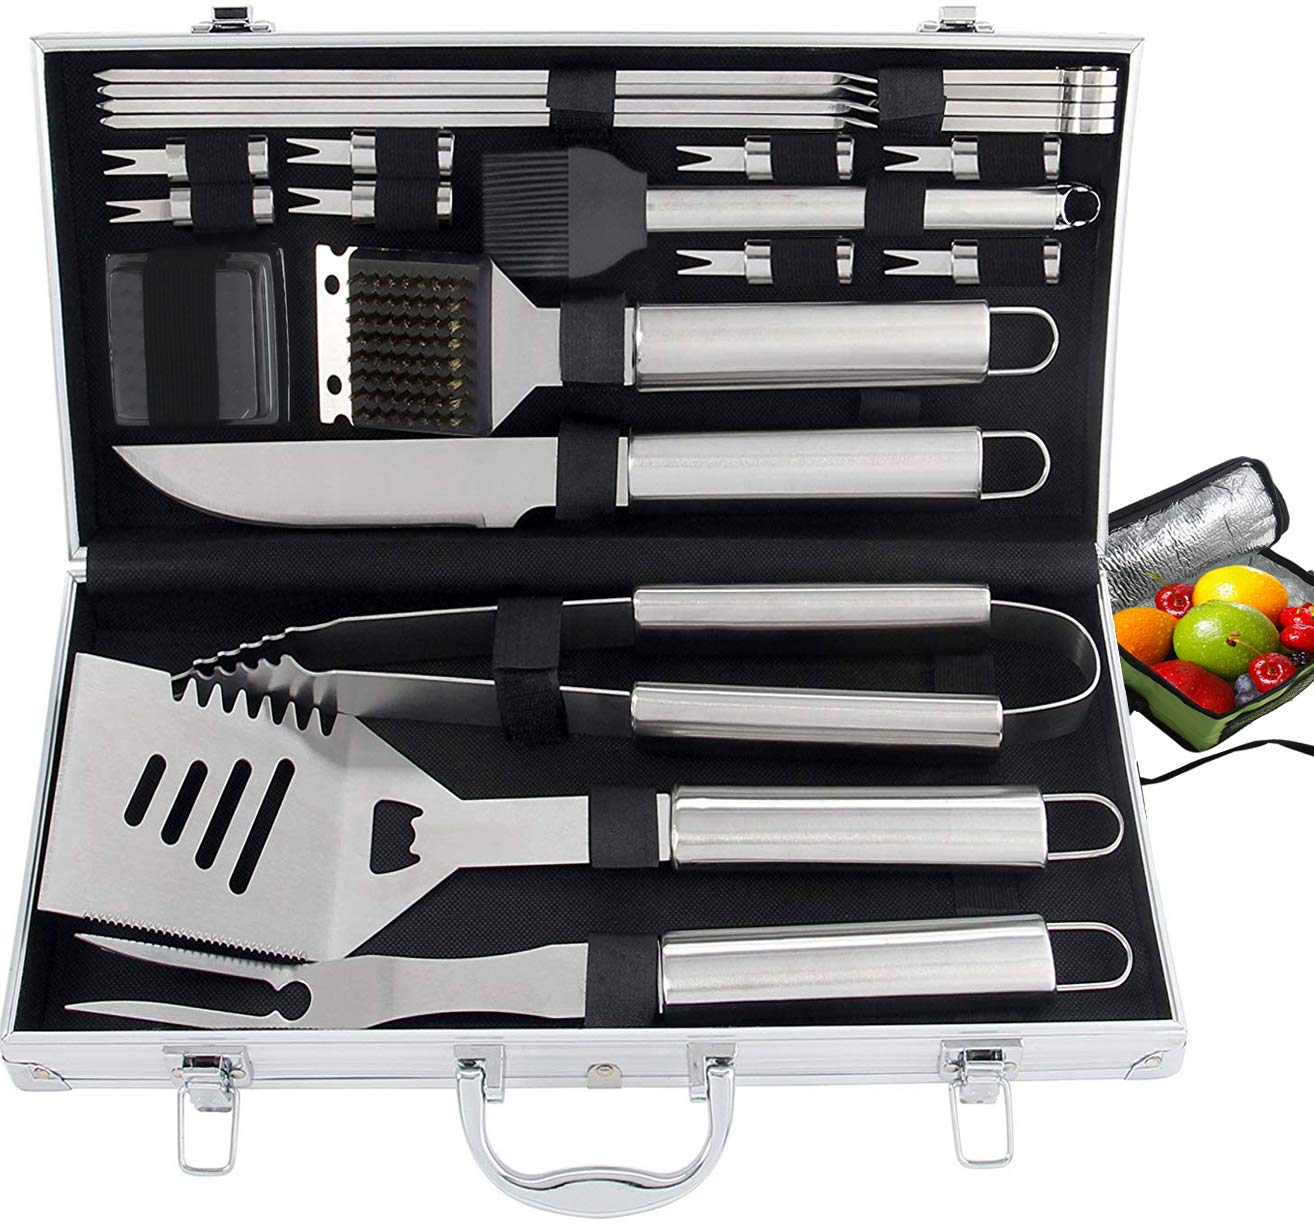 ROMANTICIST 21pc Heavy Duty BBQ Grill Tool Set with Cooler Bag – Great Grill Gift Set for Men Women on Birthday Wedding – Outdoor Camping Tailgating Barbecue Grill Accessories in Aluminum Case